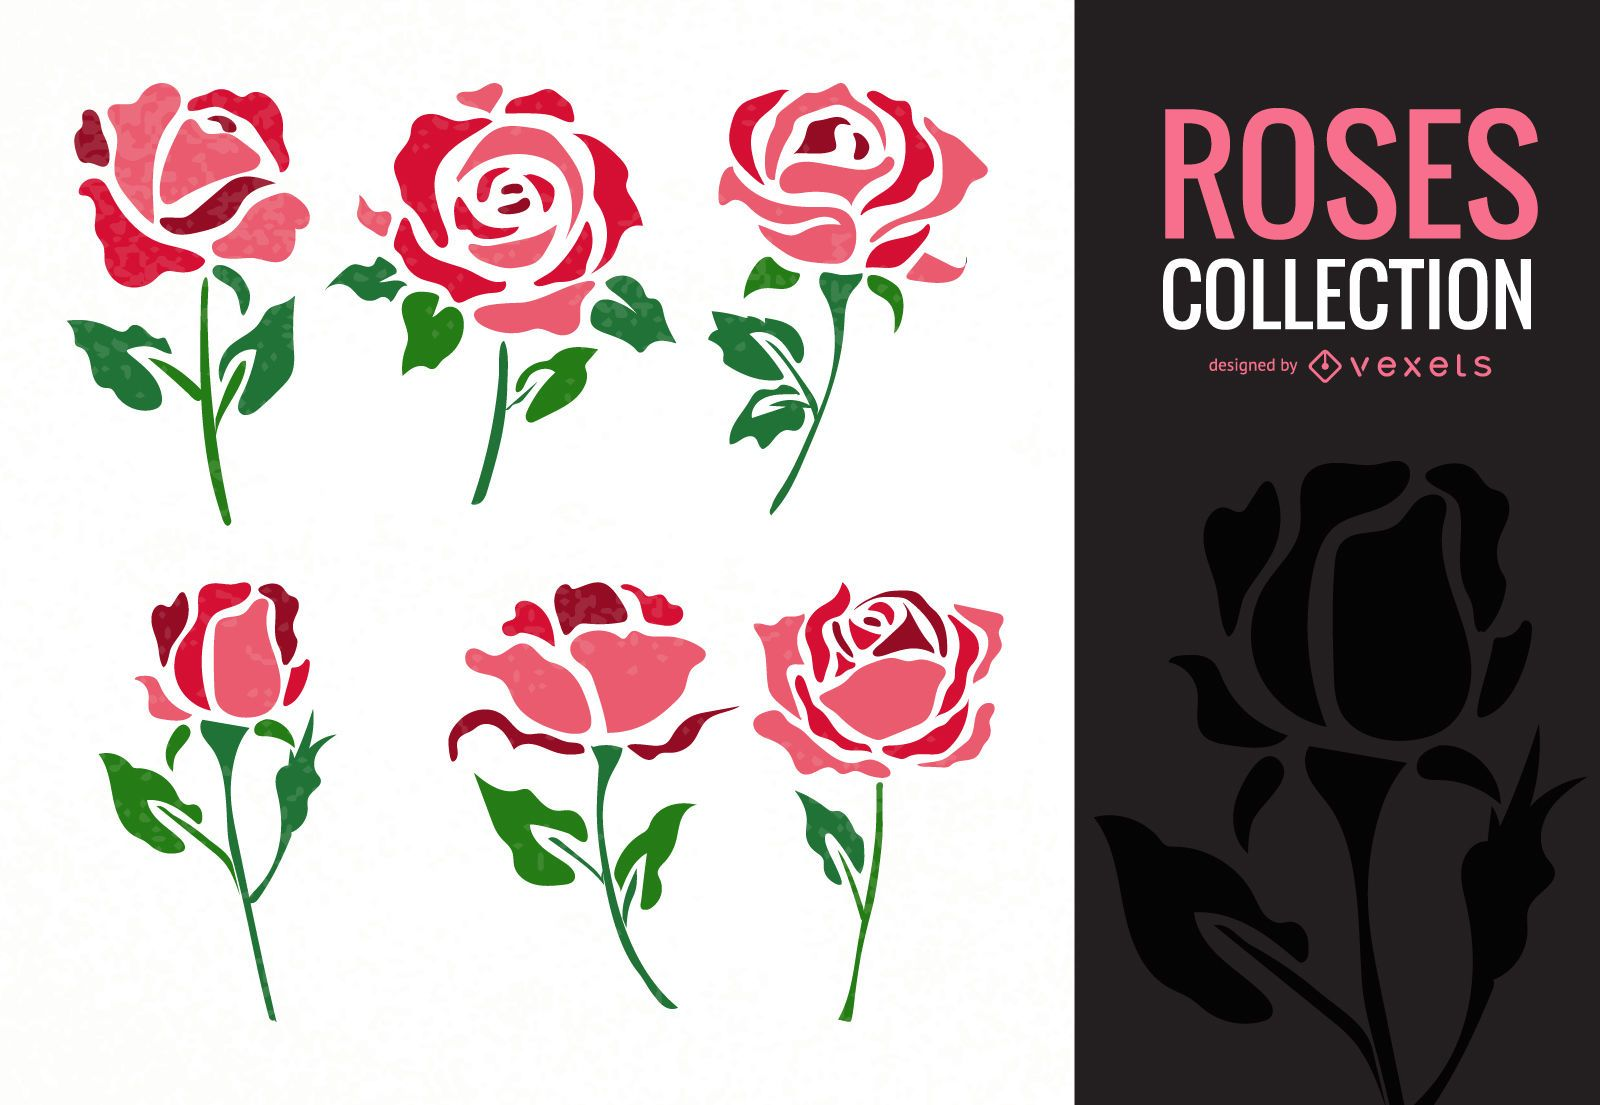 Rose illustration collection